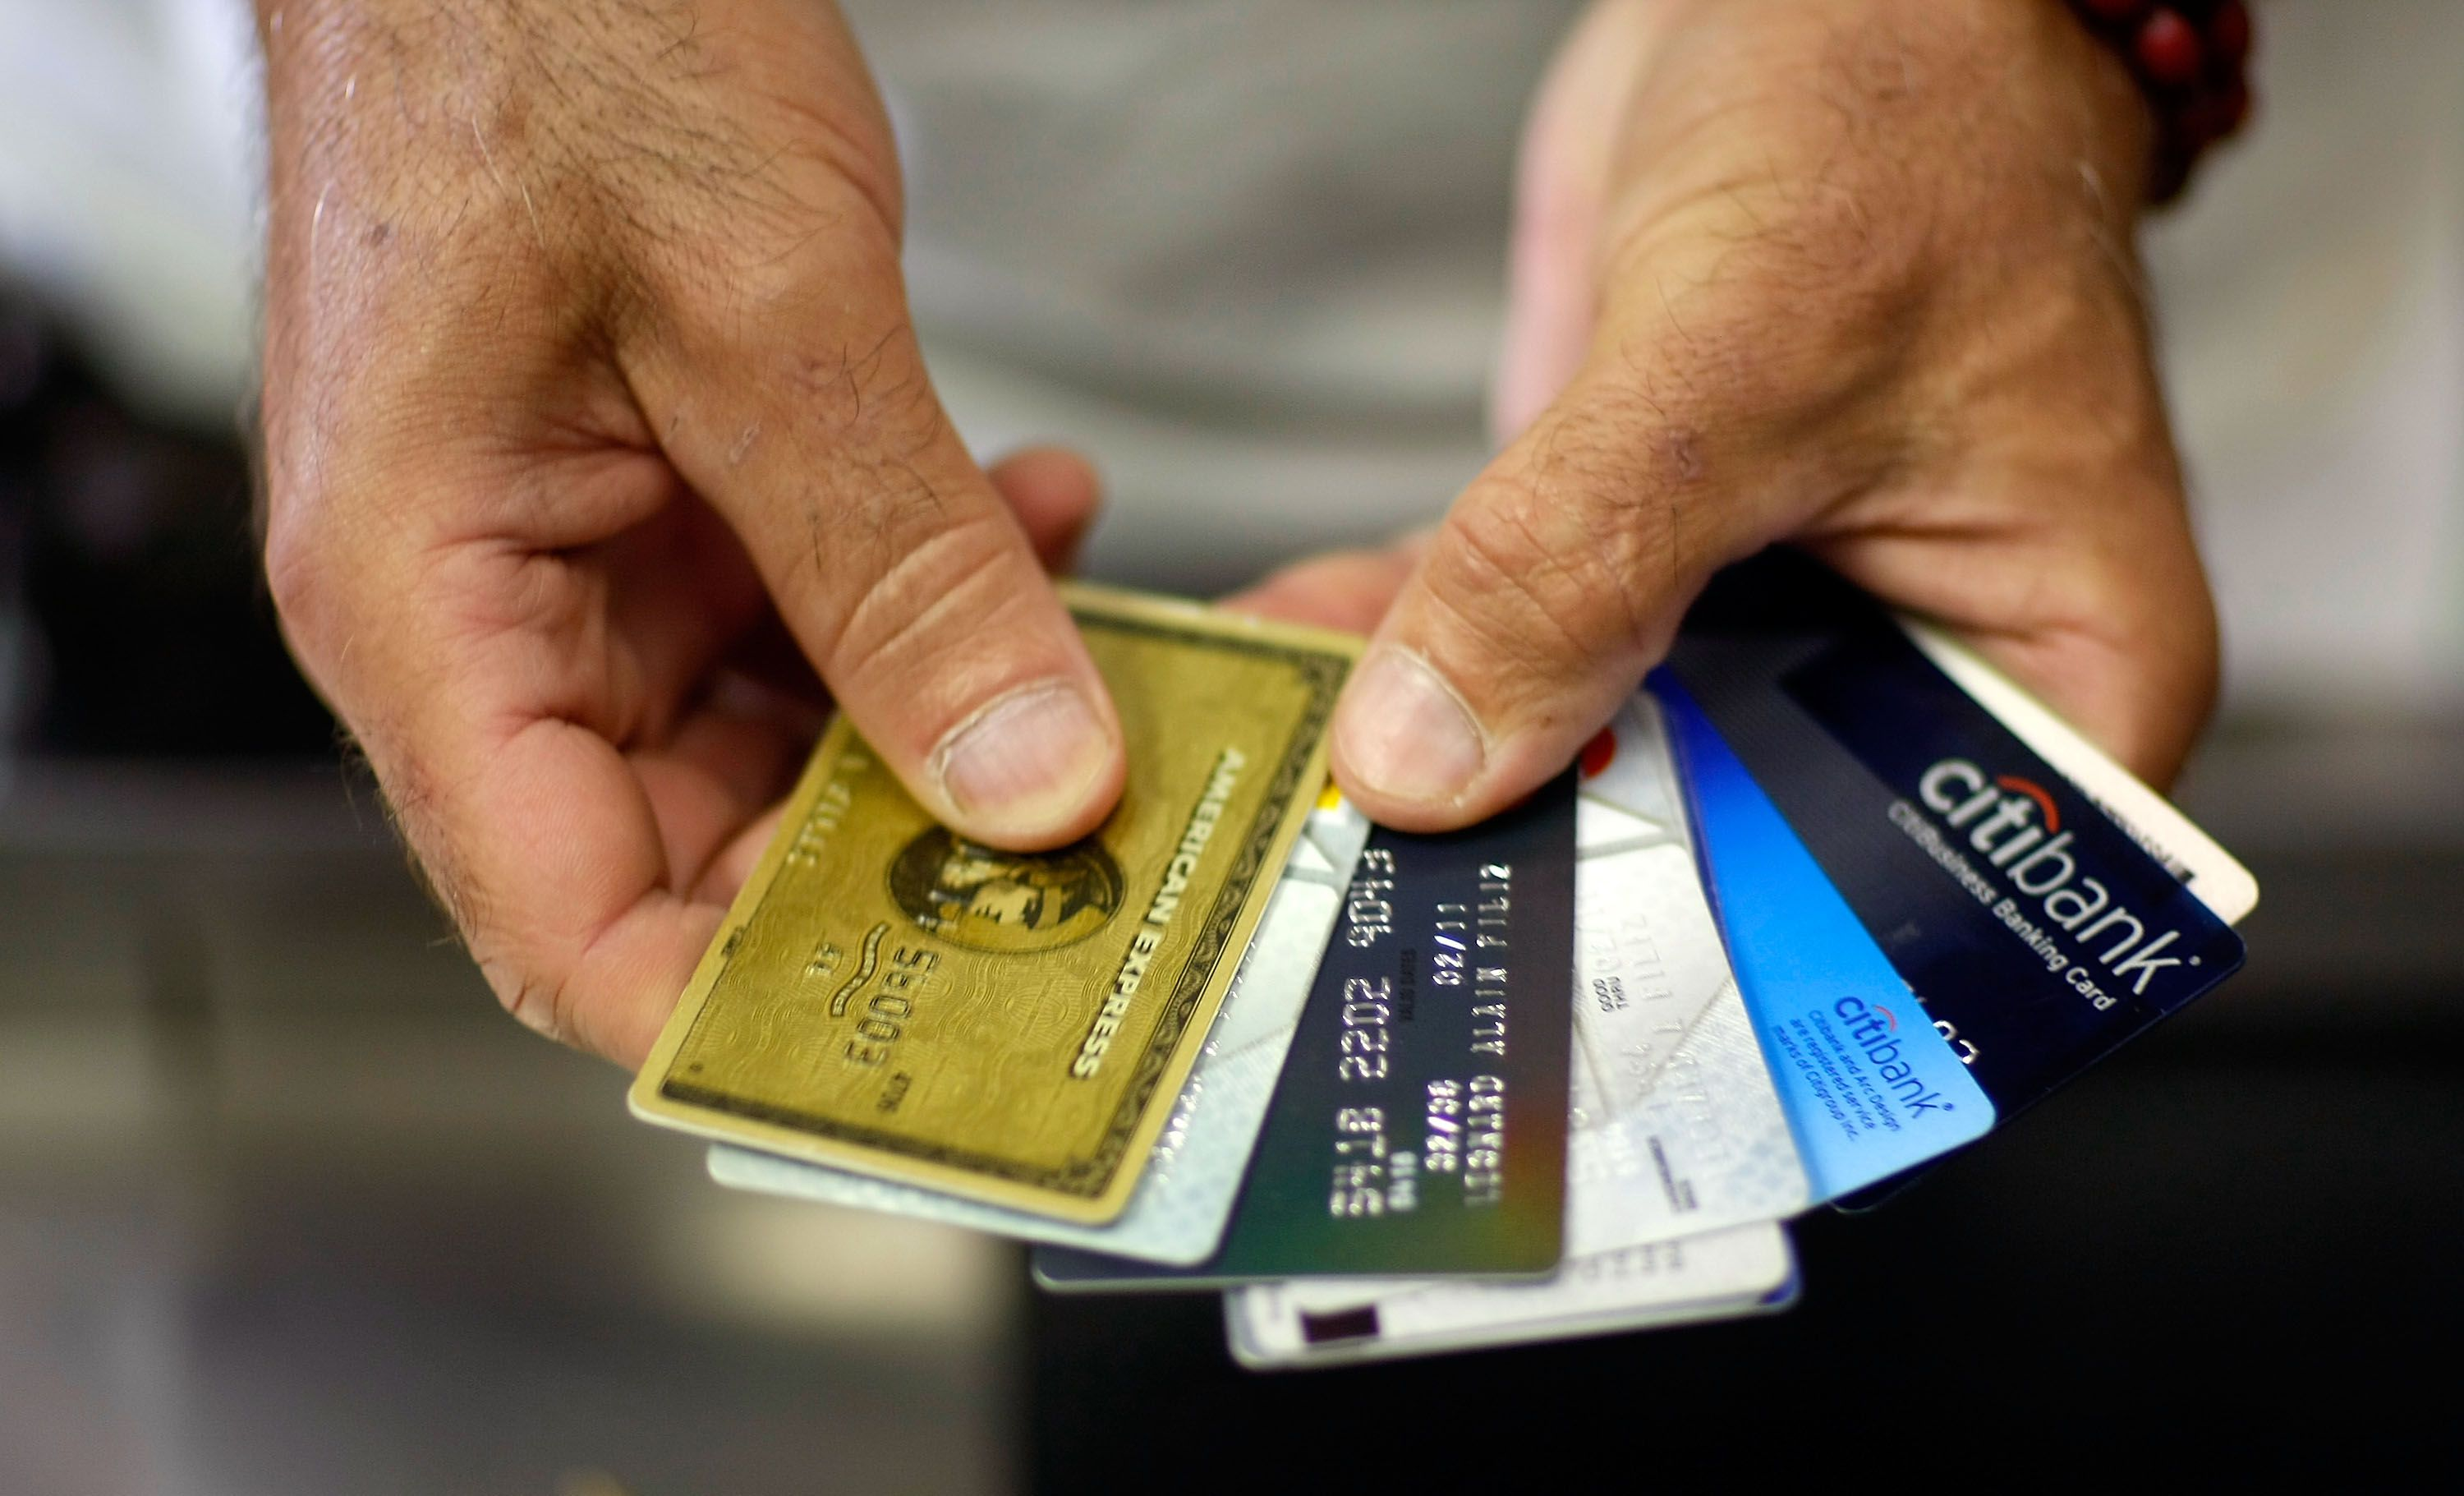 How opening a new credit card affects your credit score reheart